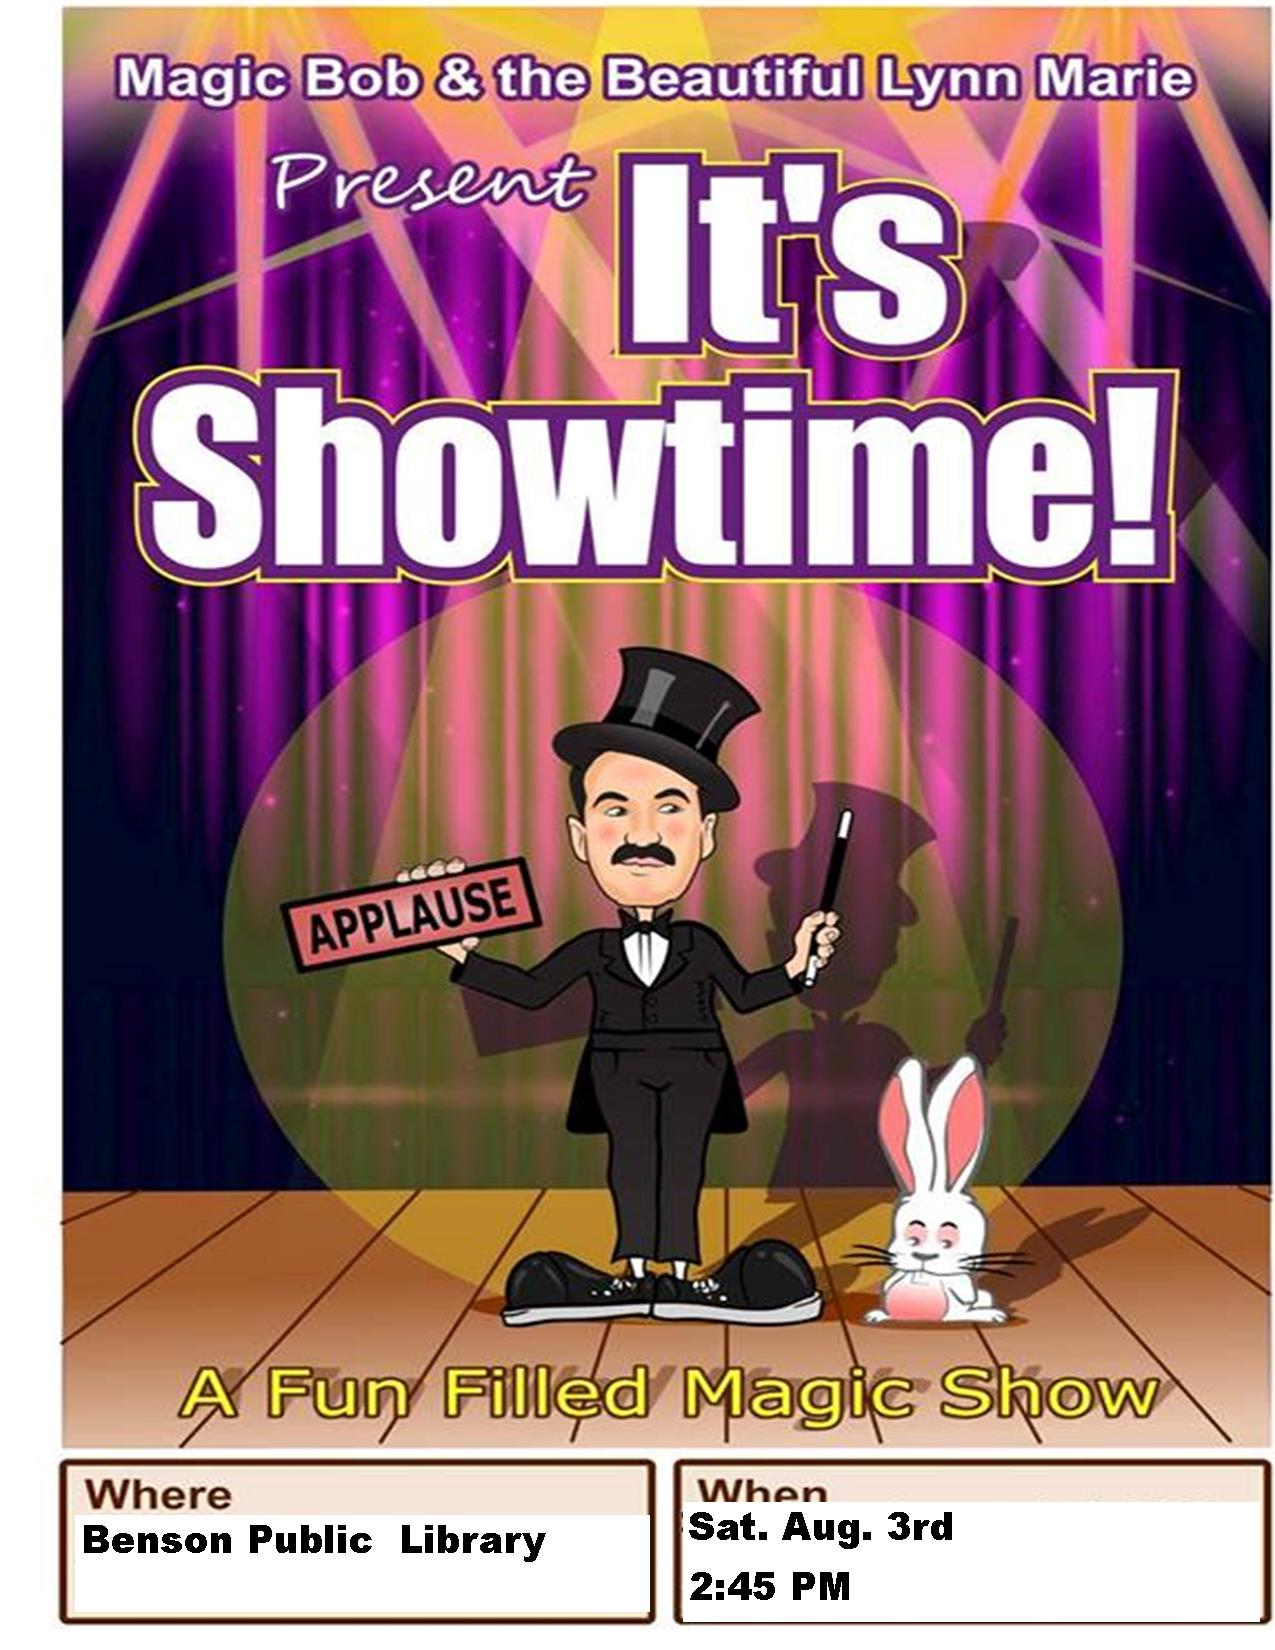 Join us for a magic show to end our Summer Reading Program. Come see Magic Bob perform awesome feats! Saturday, August 3 at 2:45 pm!